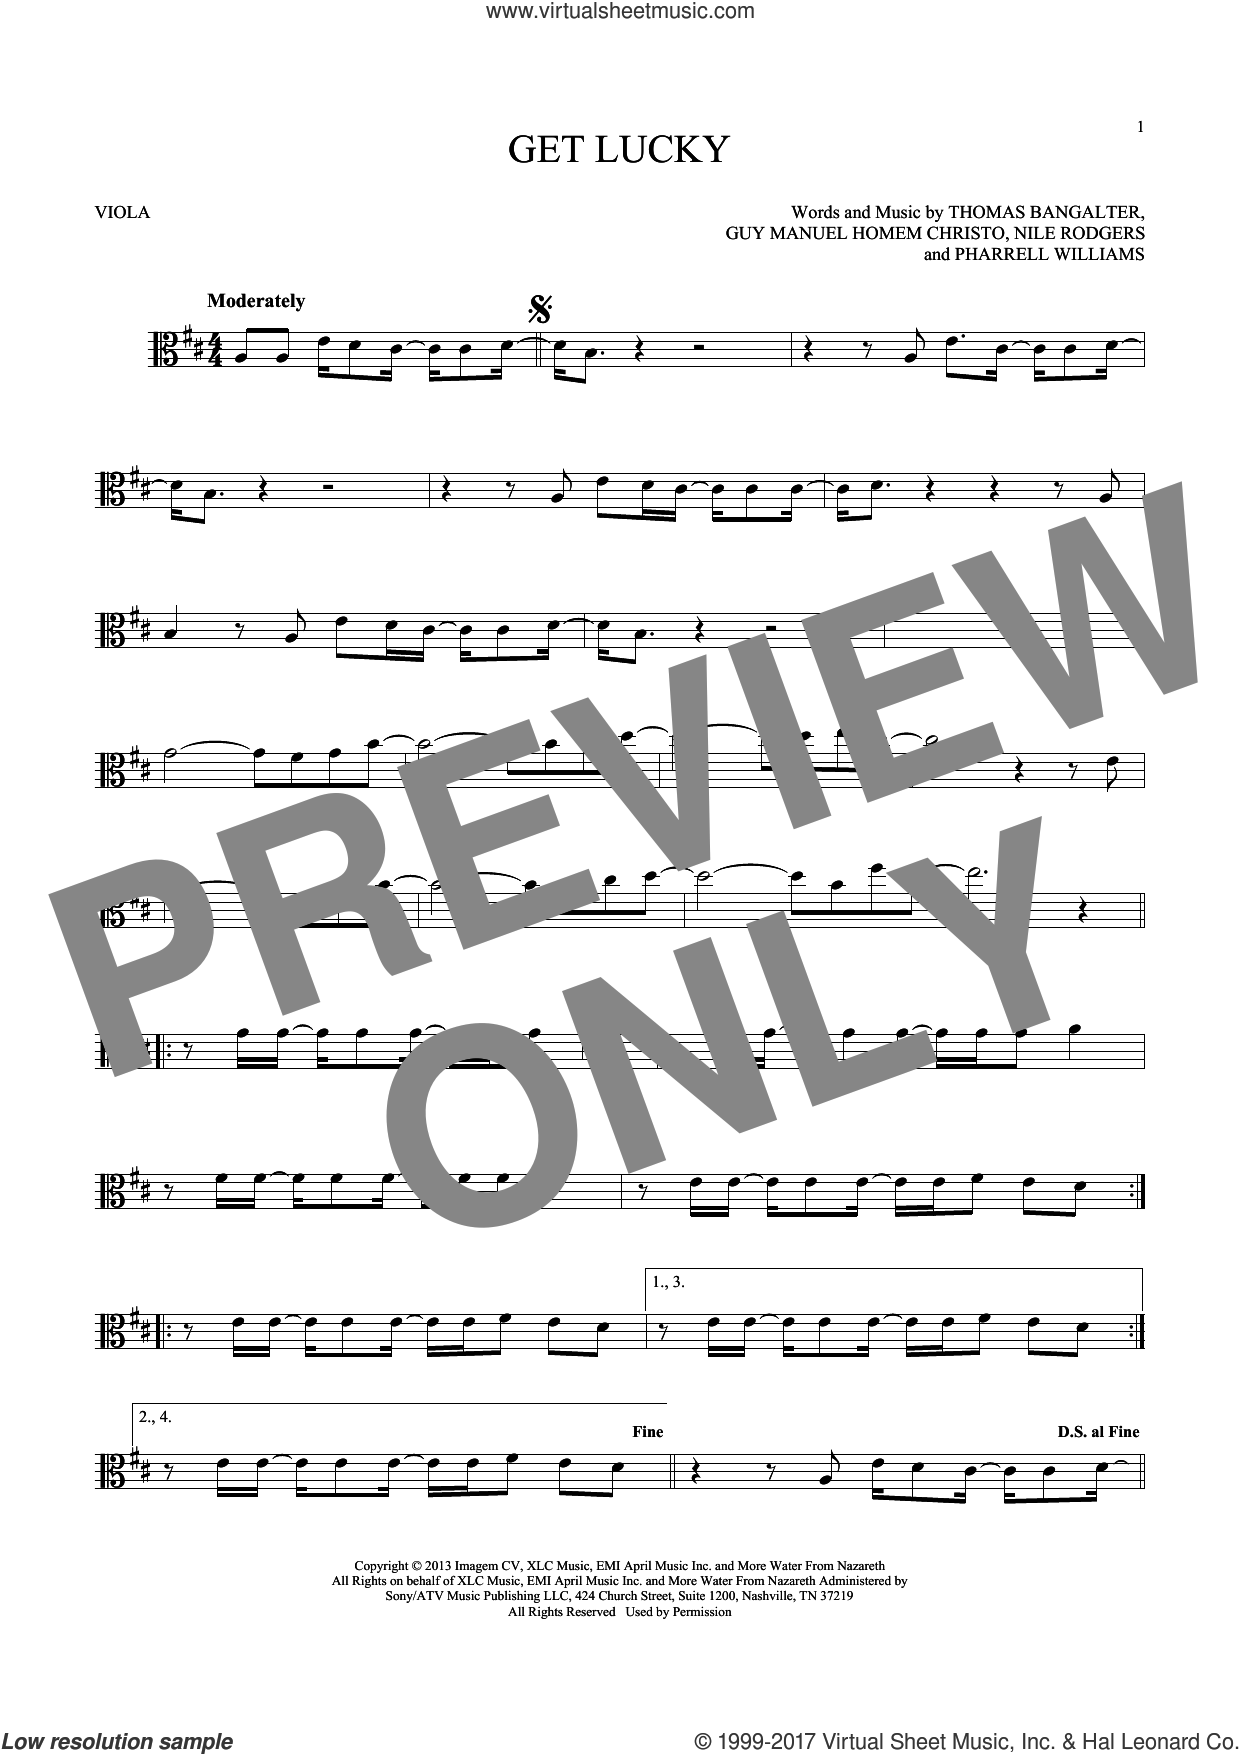 Get Lucky sheet music for viola solo by Daft Punk Featuring Pharrell Williams, Nile Rodgers and Pharrell Williams, intermediate viola. Score Image Preview.